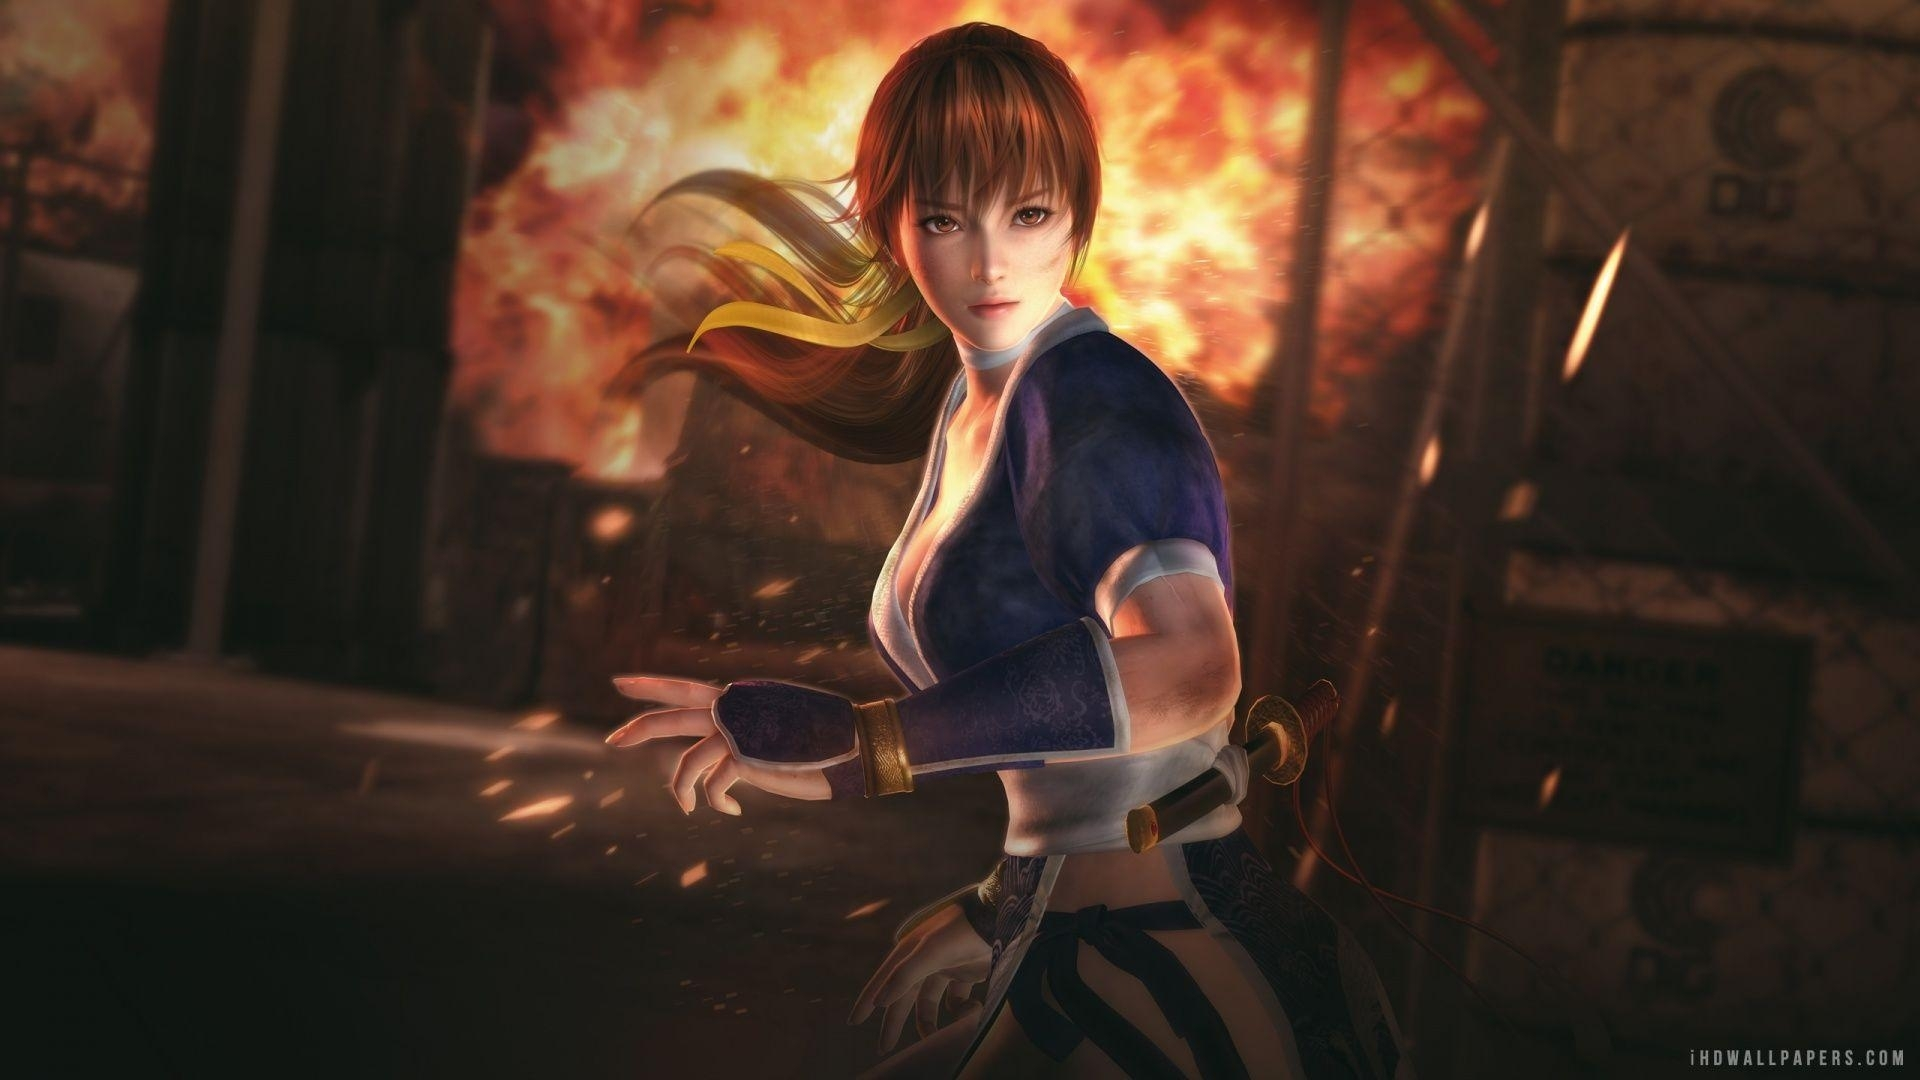 dead or alive 5 wallpapers - wallpaper cave